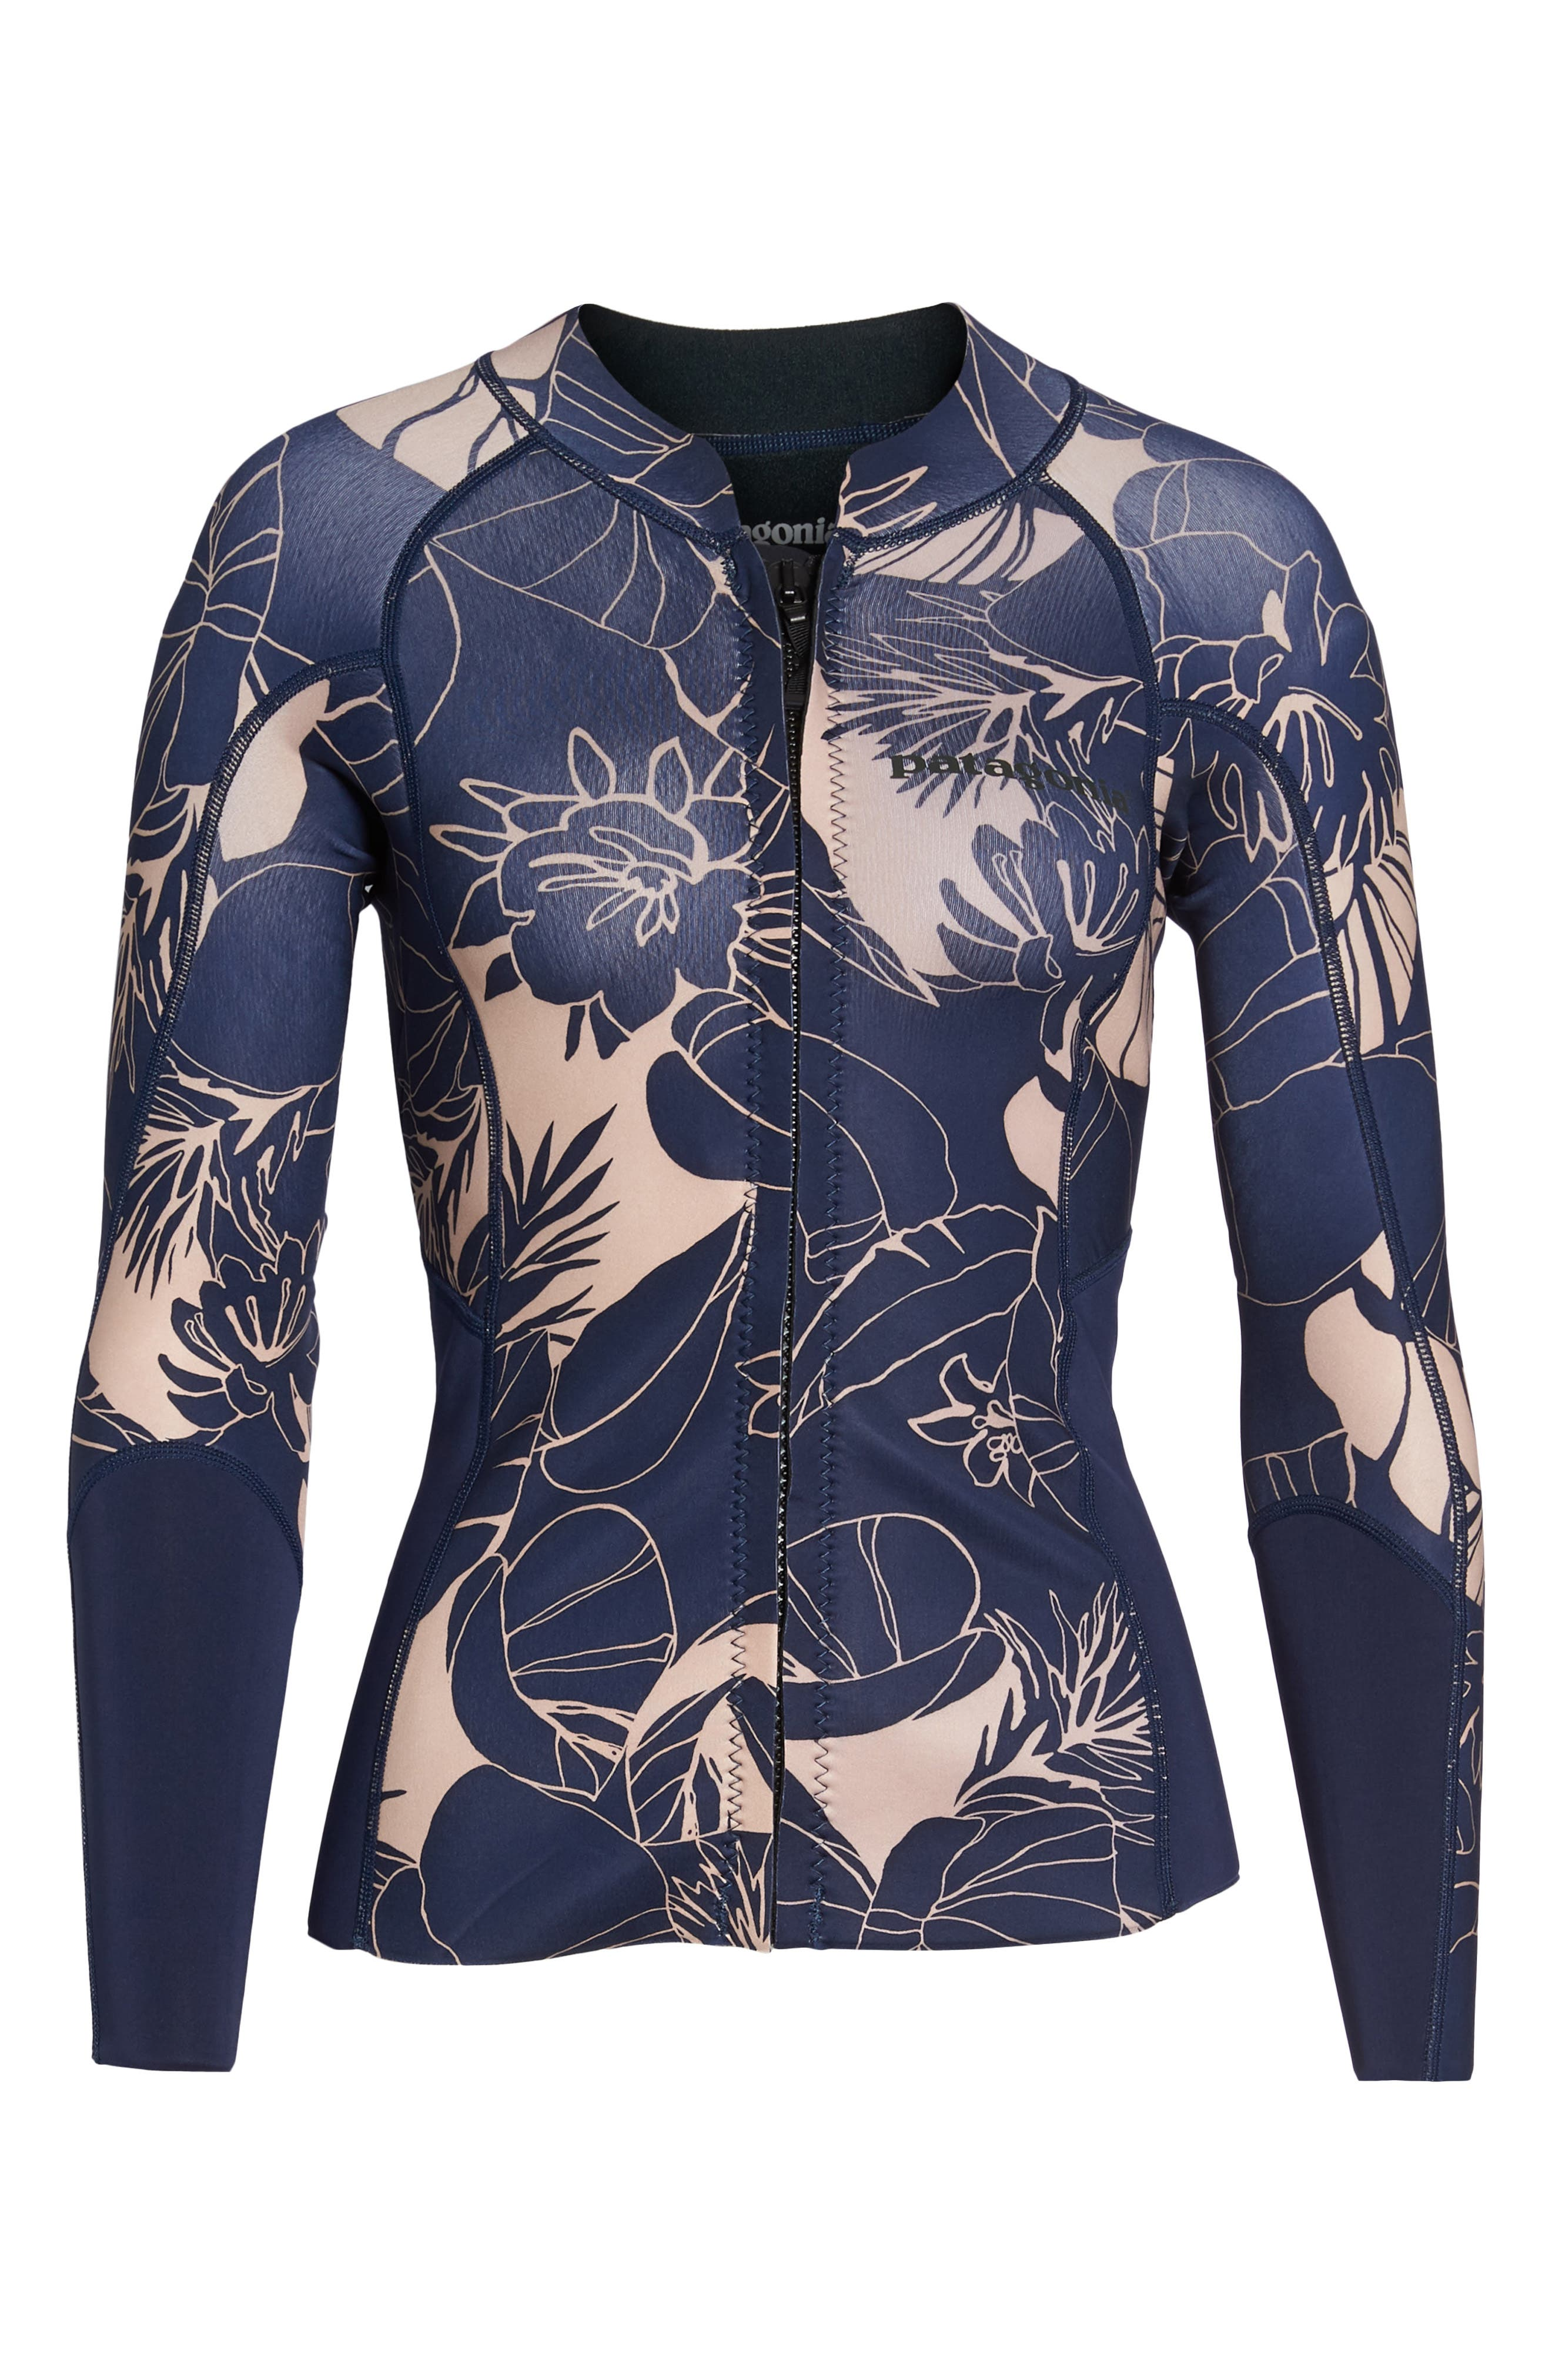 R1 Lite Yulex Rashguard,                             Alternate thumbnail 6, color,                             525